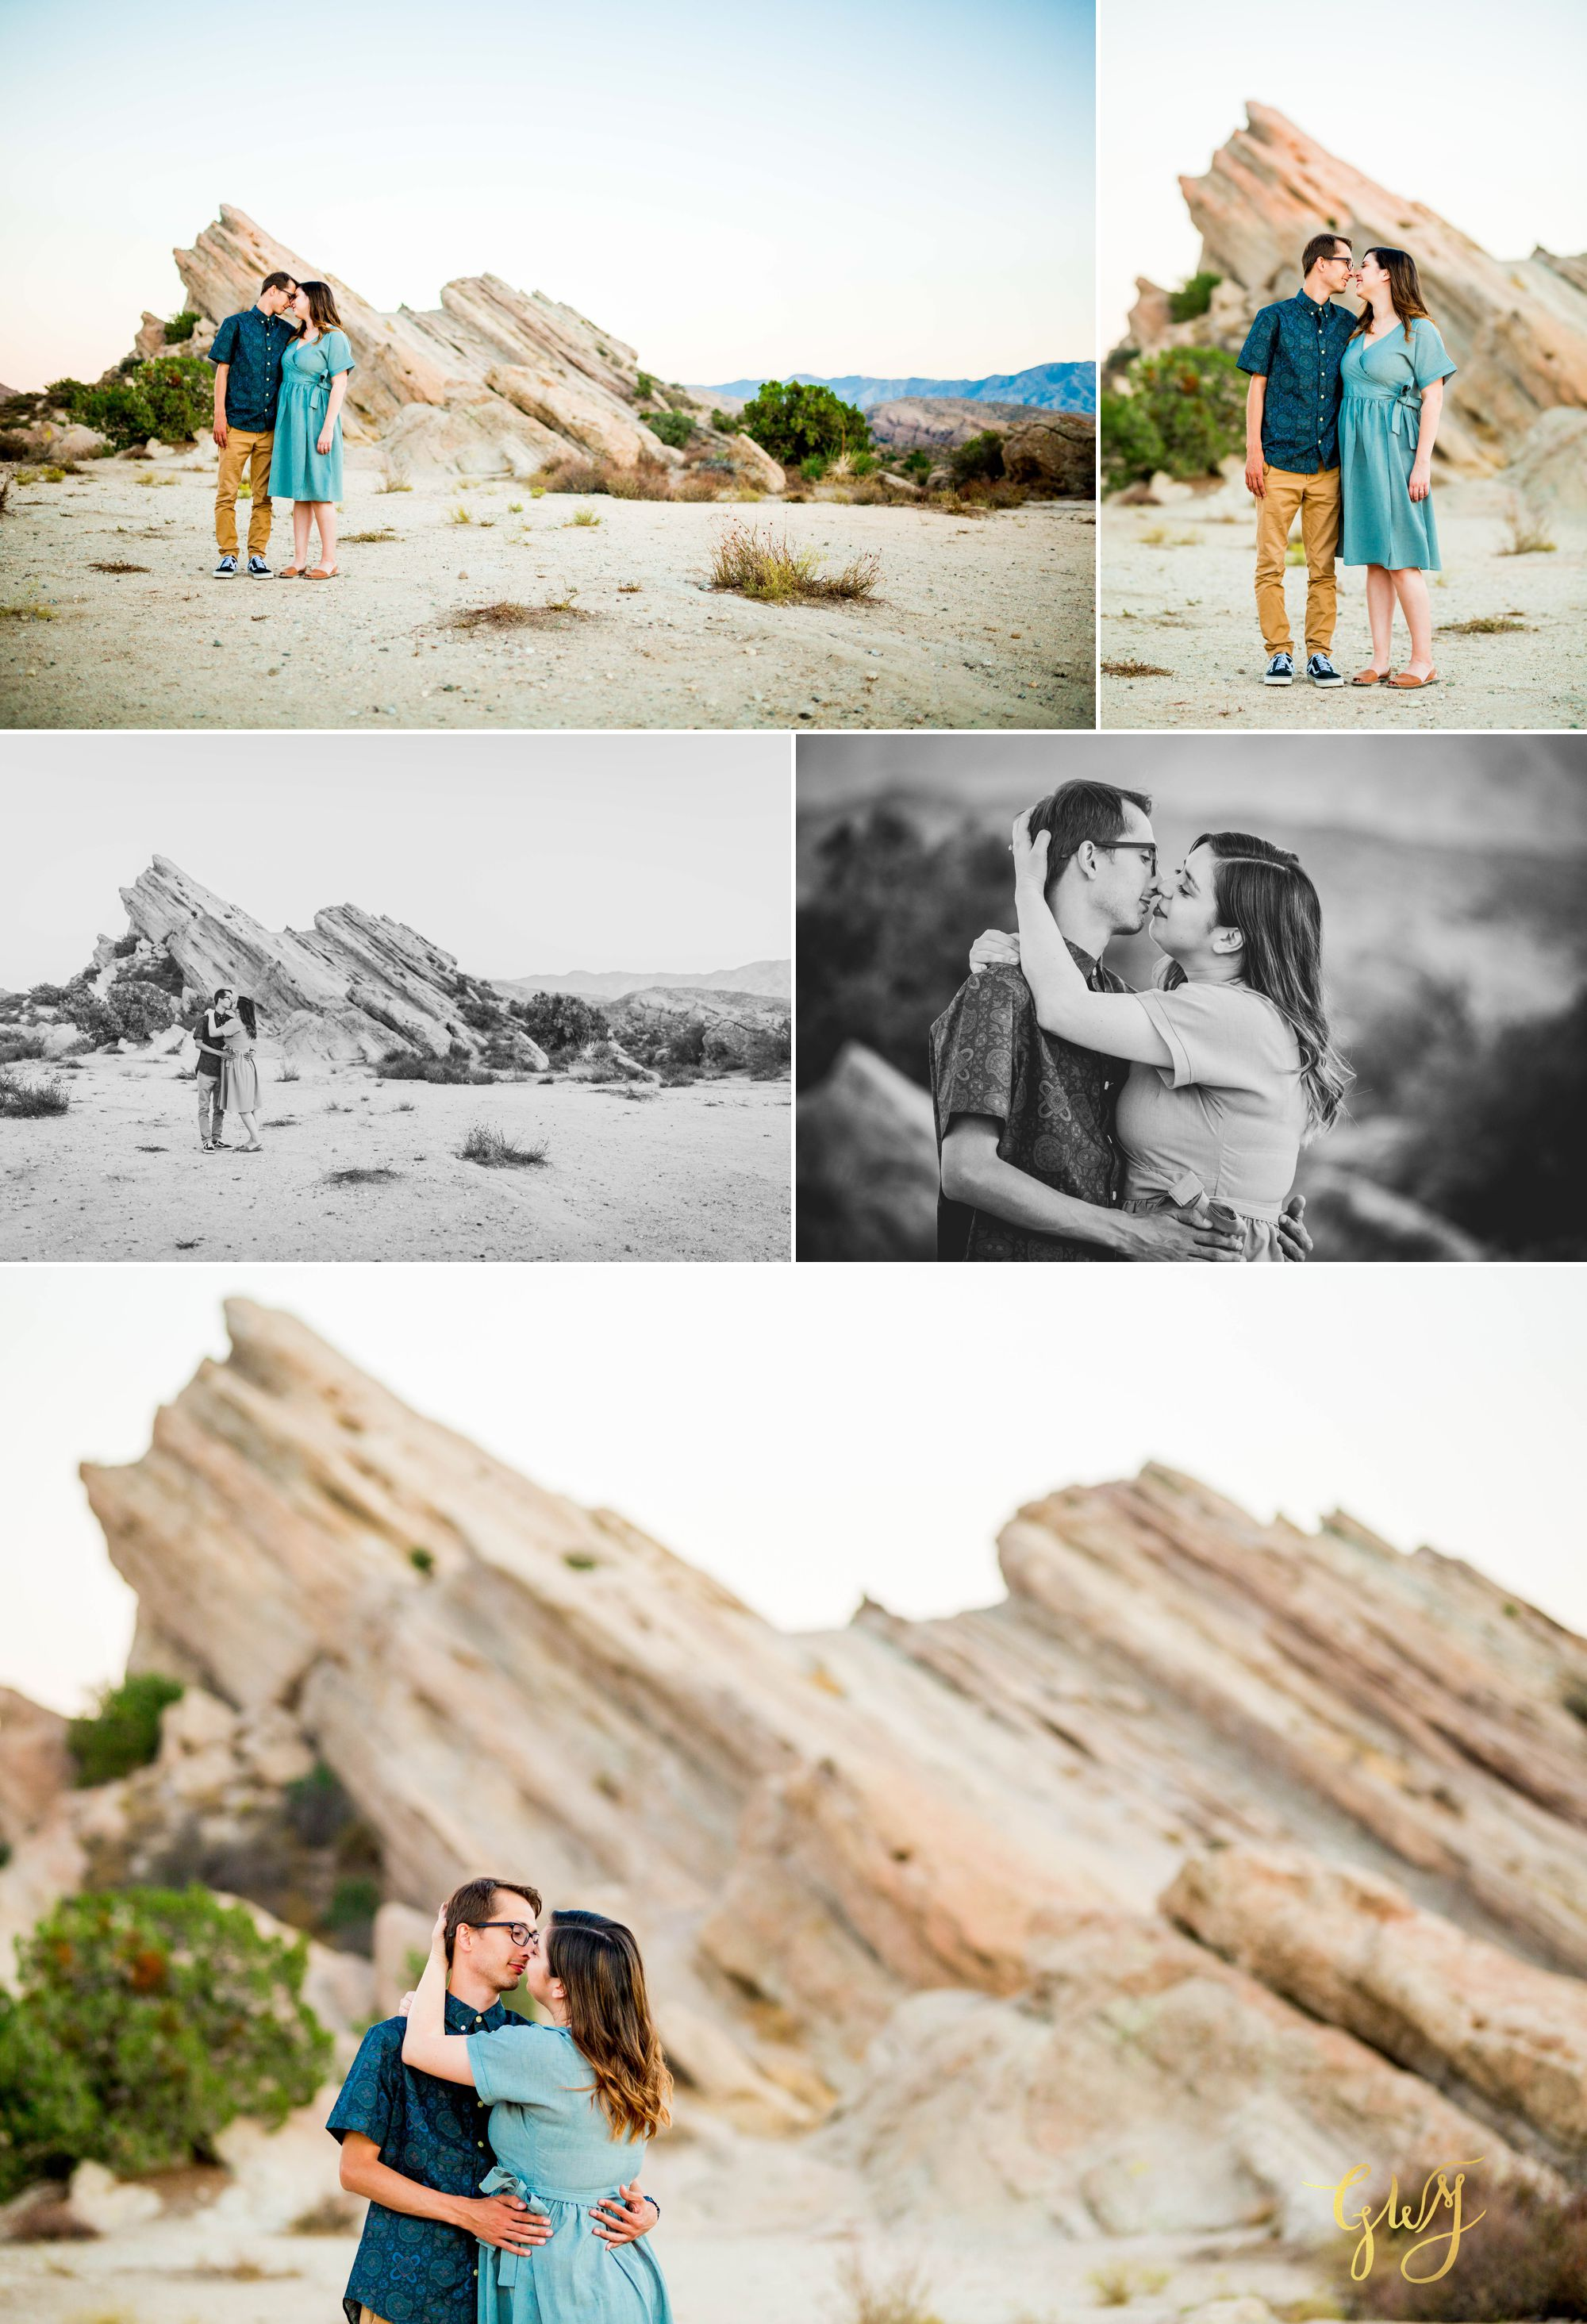 KJ + Maddie Vasquez Rocks Adventurous Hiking Outdoors Engagement Session by Glass Woods Media 14.jpg